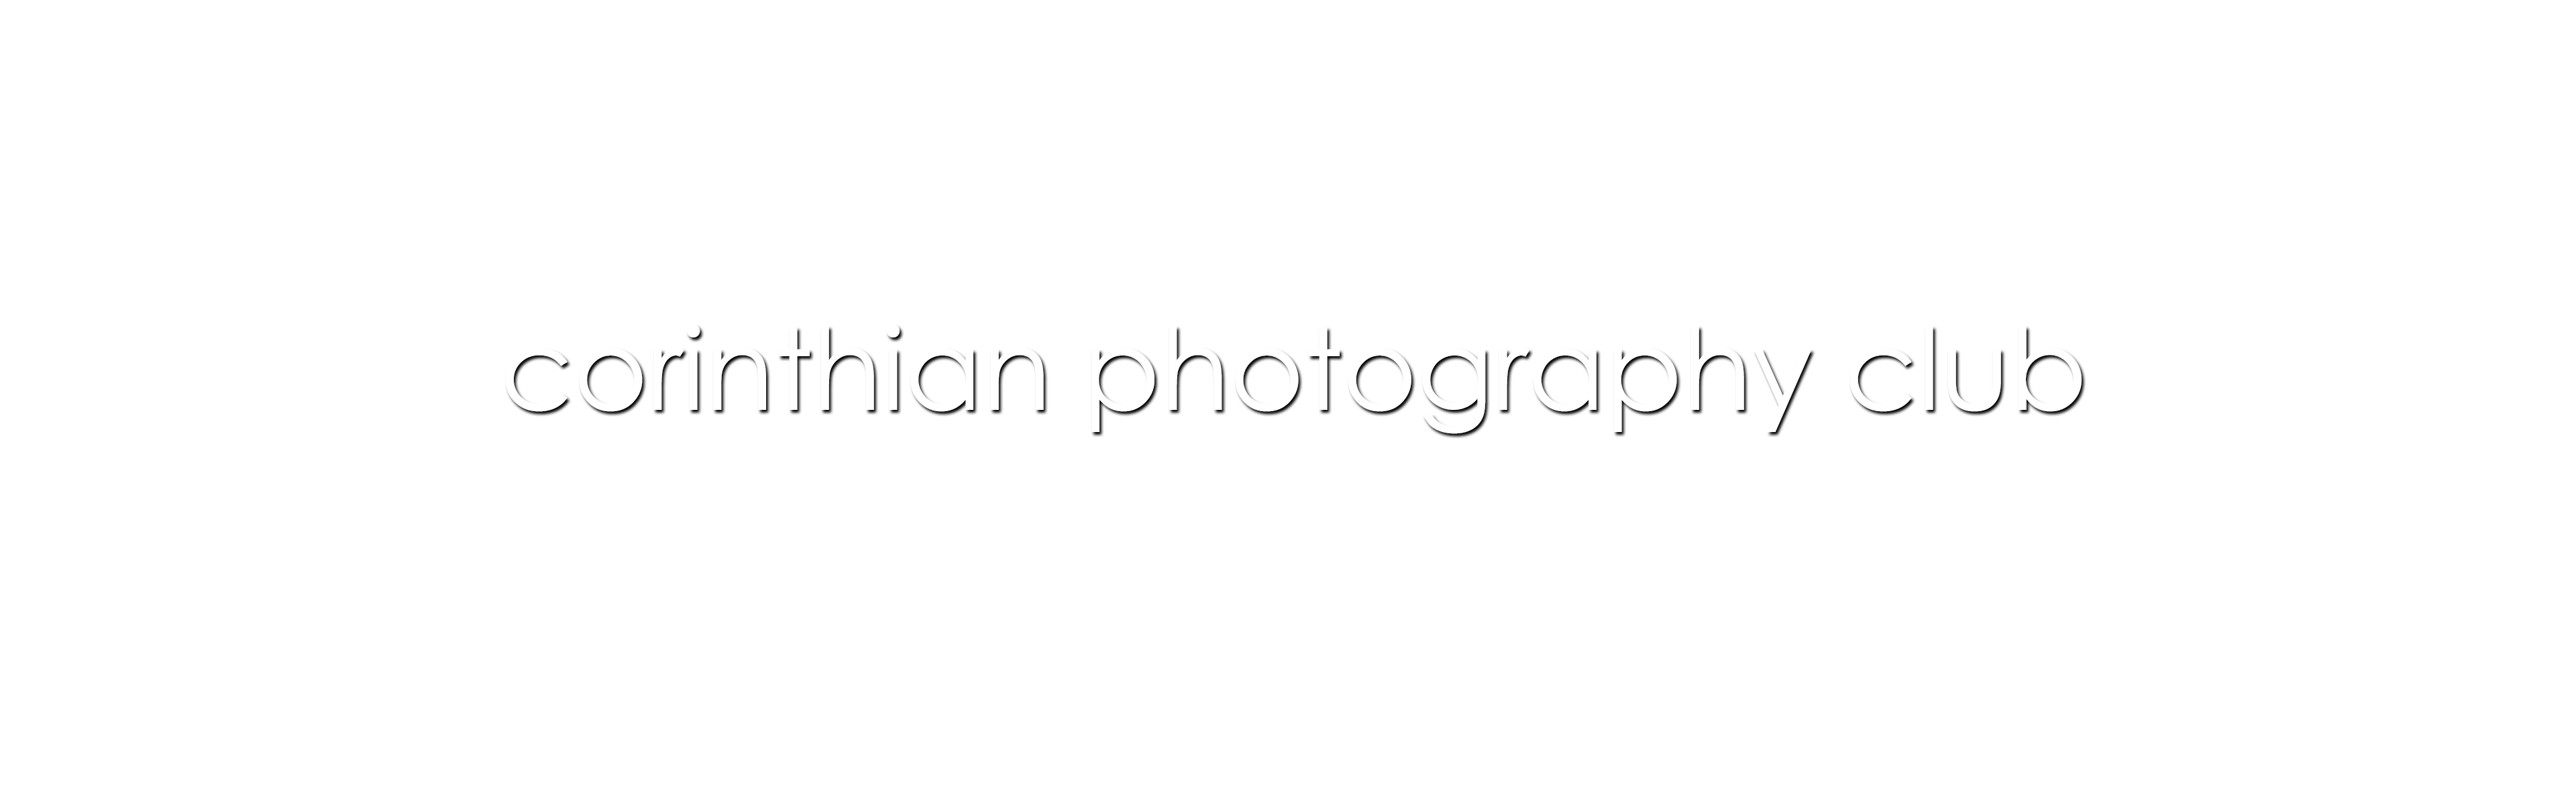 Corinthian Photography Club